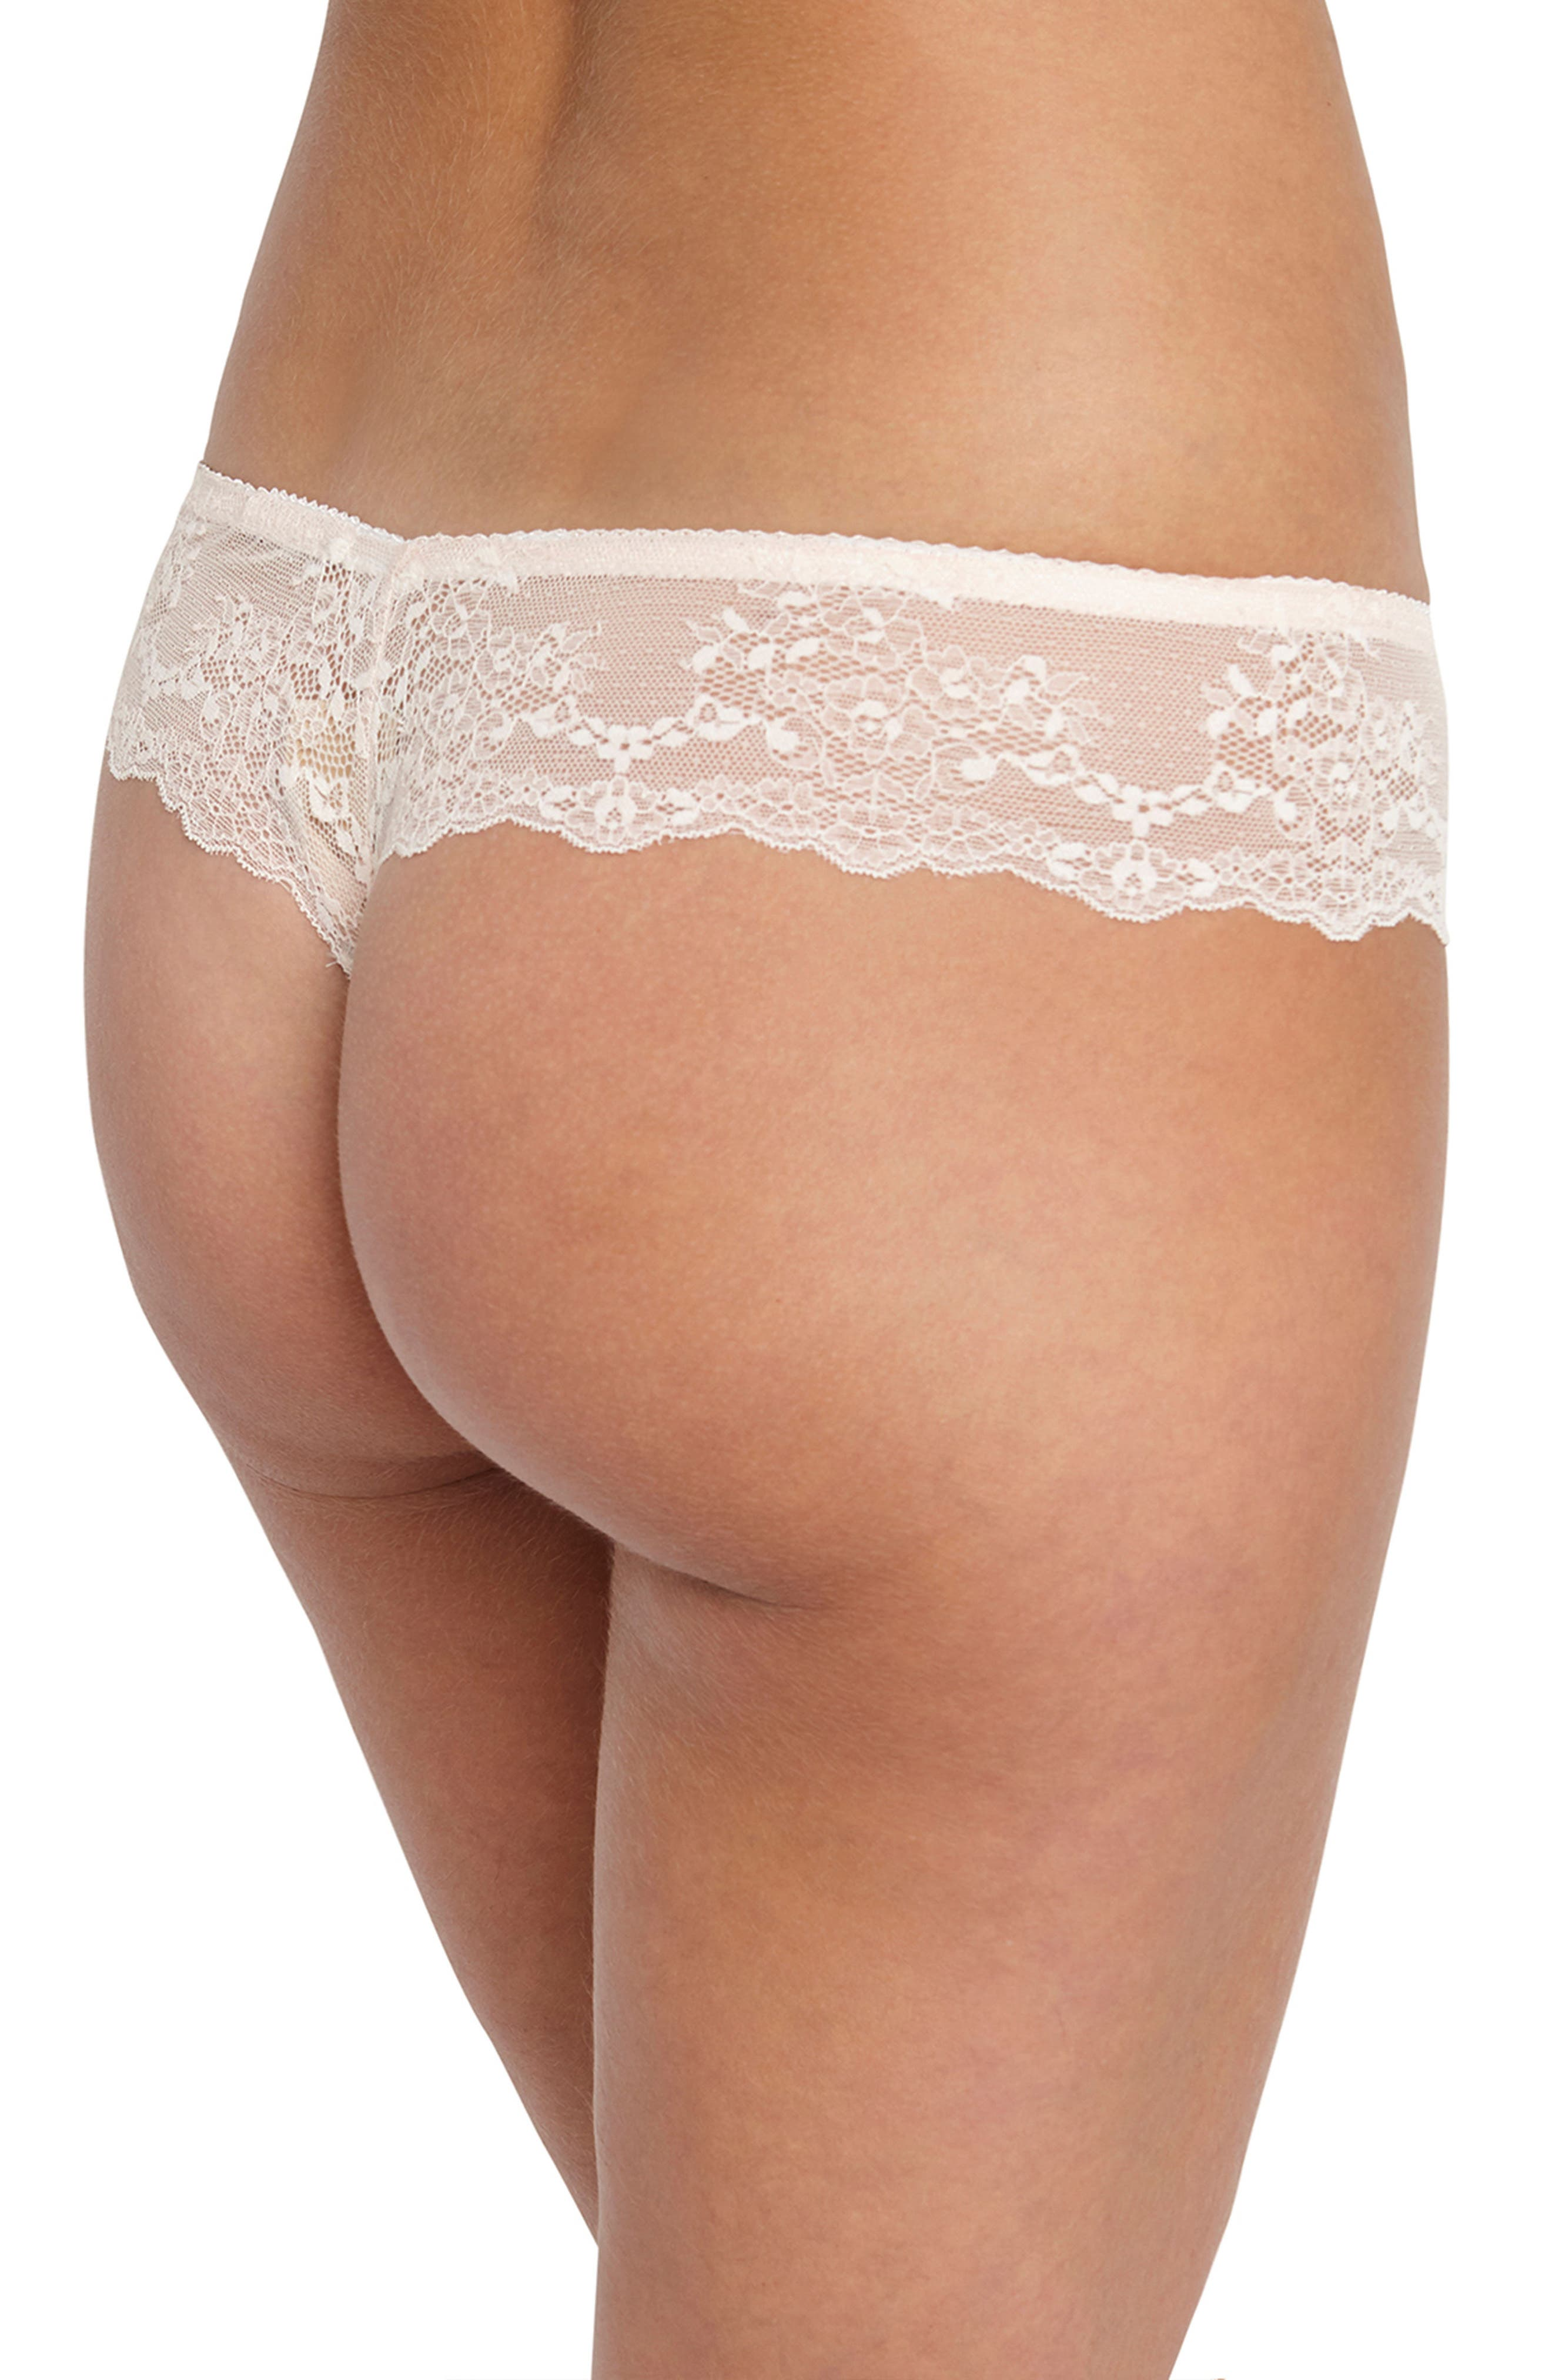 Lily Lace Silk Thong,                             Alternate thumbnail 2, color,                             Ivory Floral Print